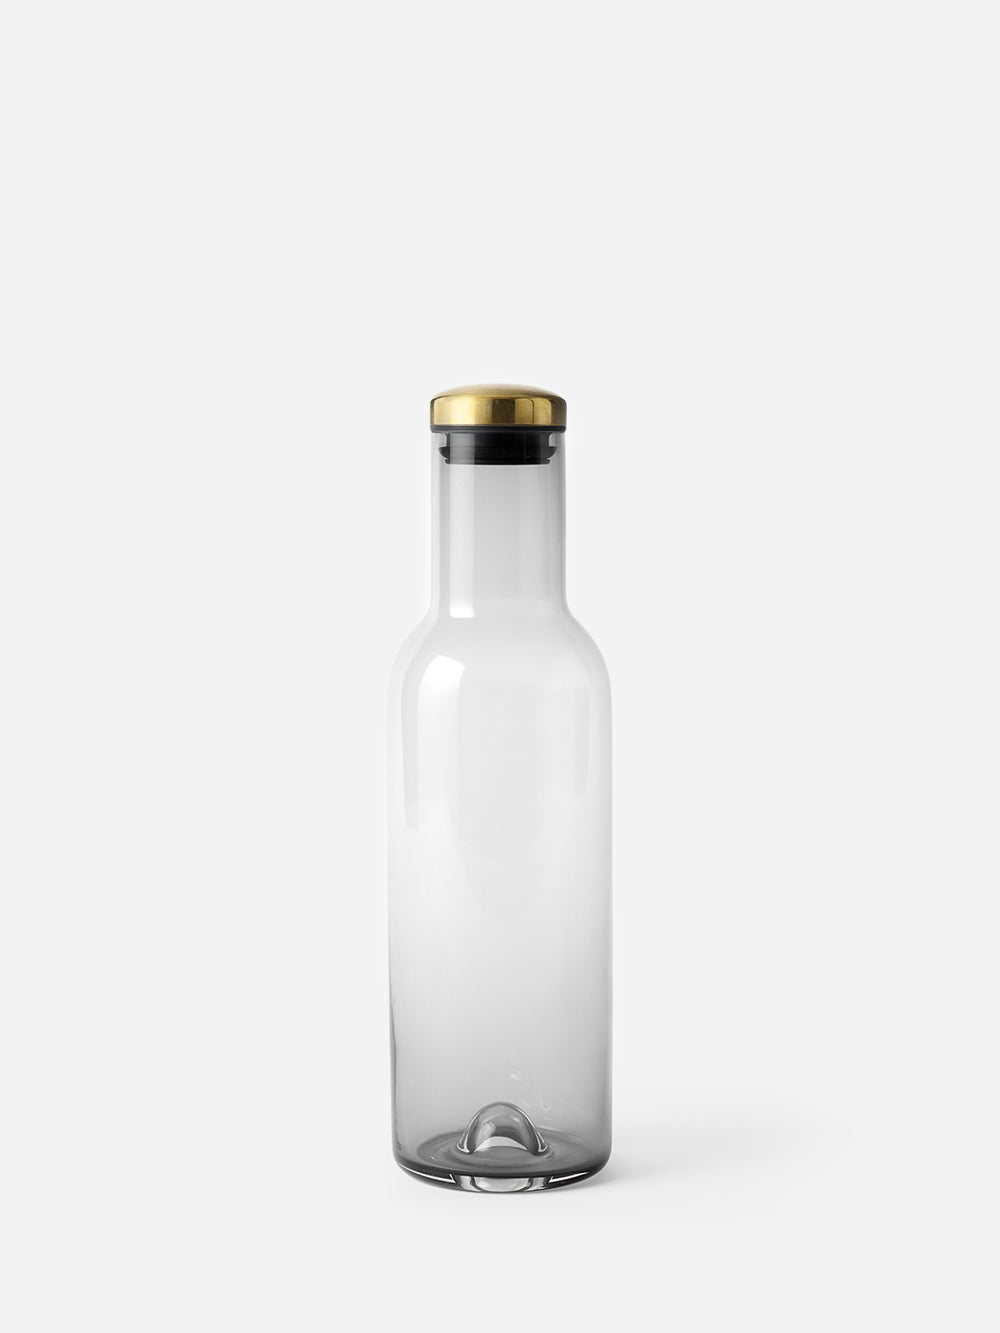 SMOKE BRASS LID bottle carafe 34 oz menu